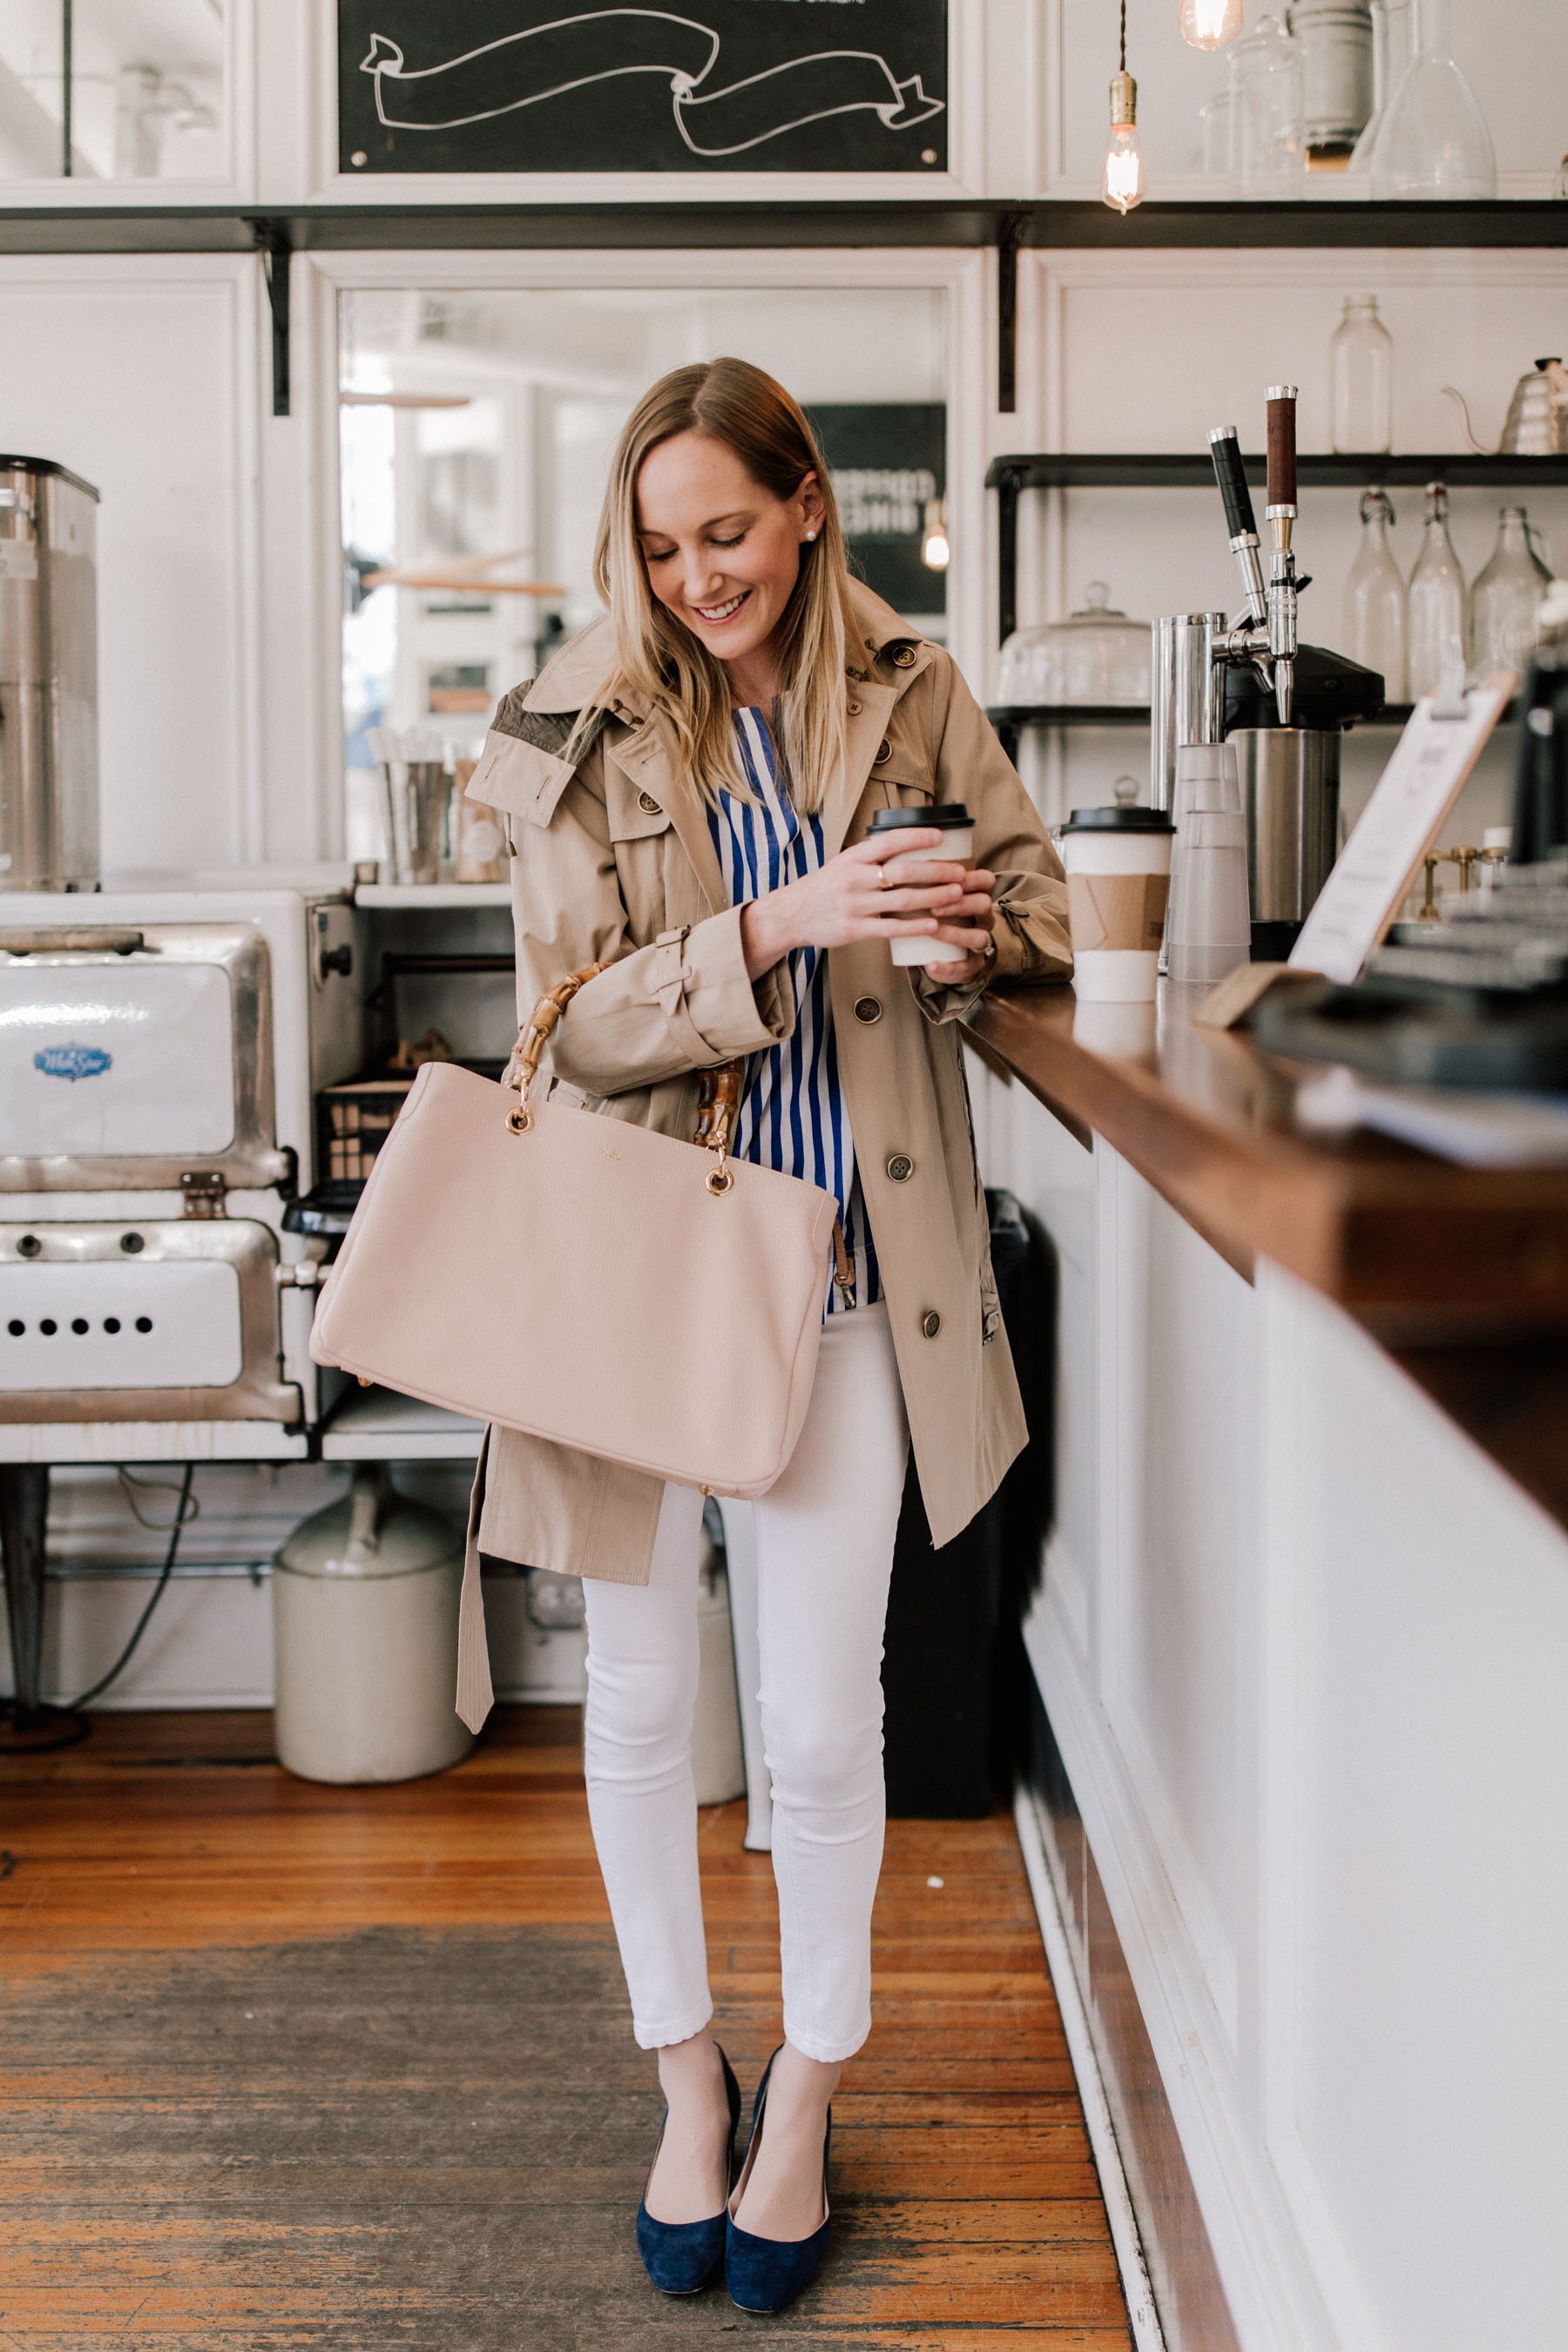 Favorite Spring Outfit + a Really Cool Chicago Spot